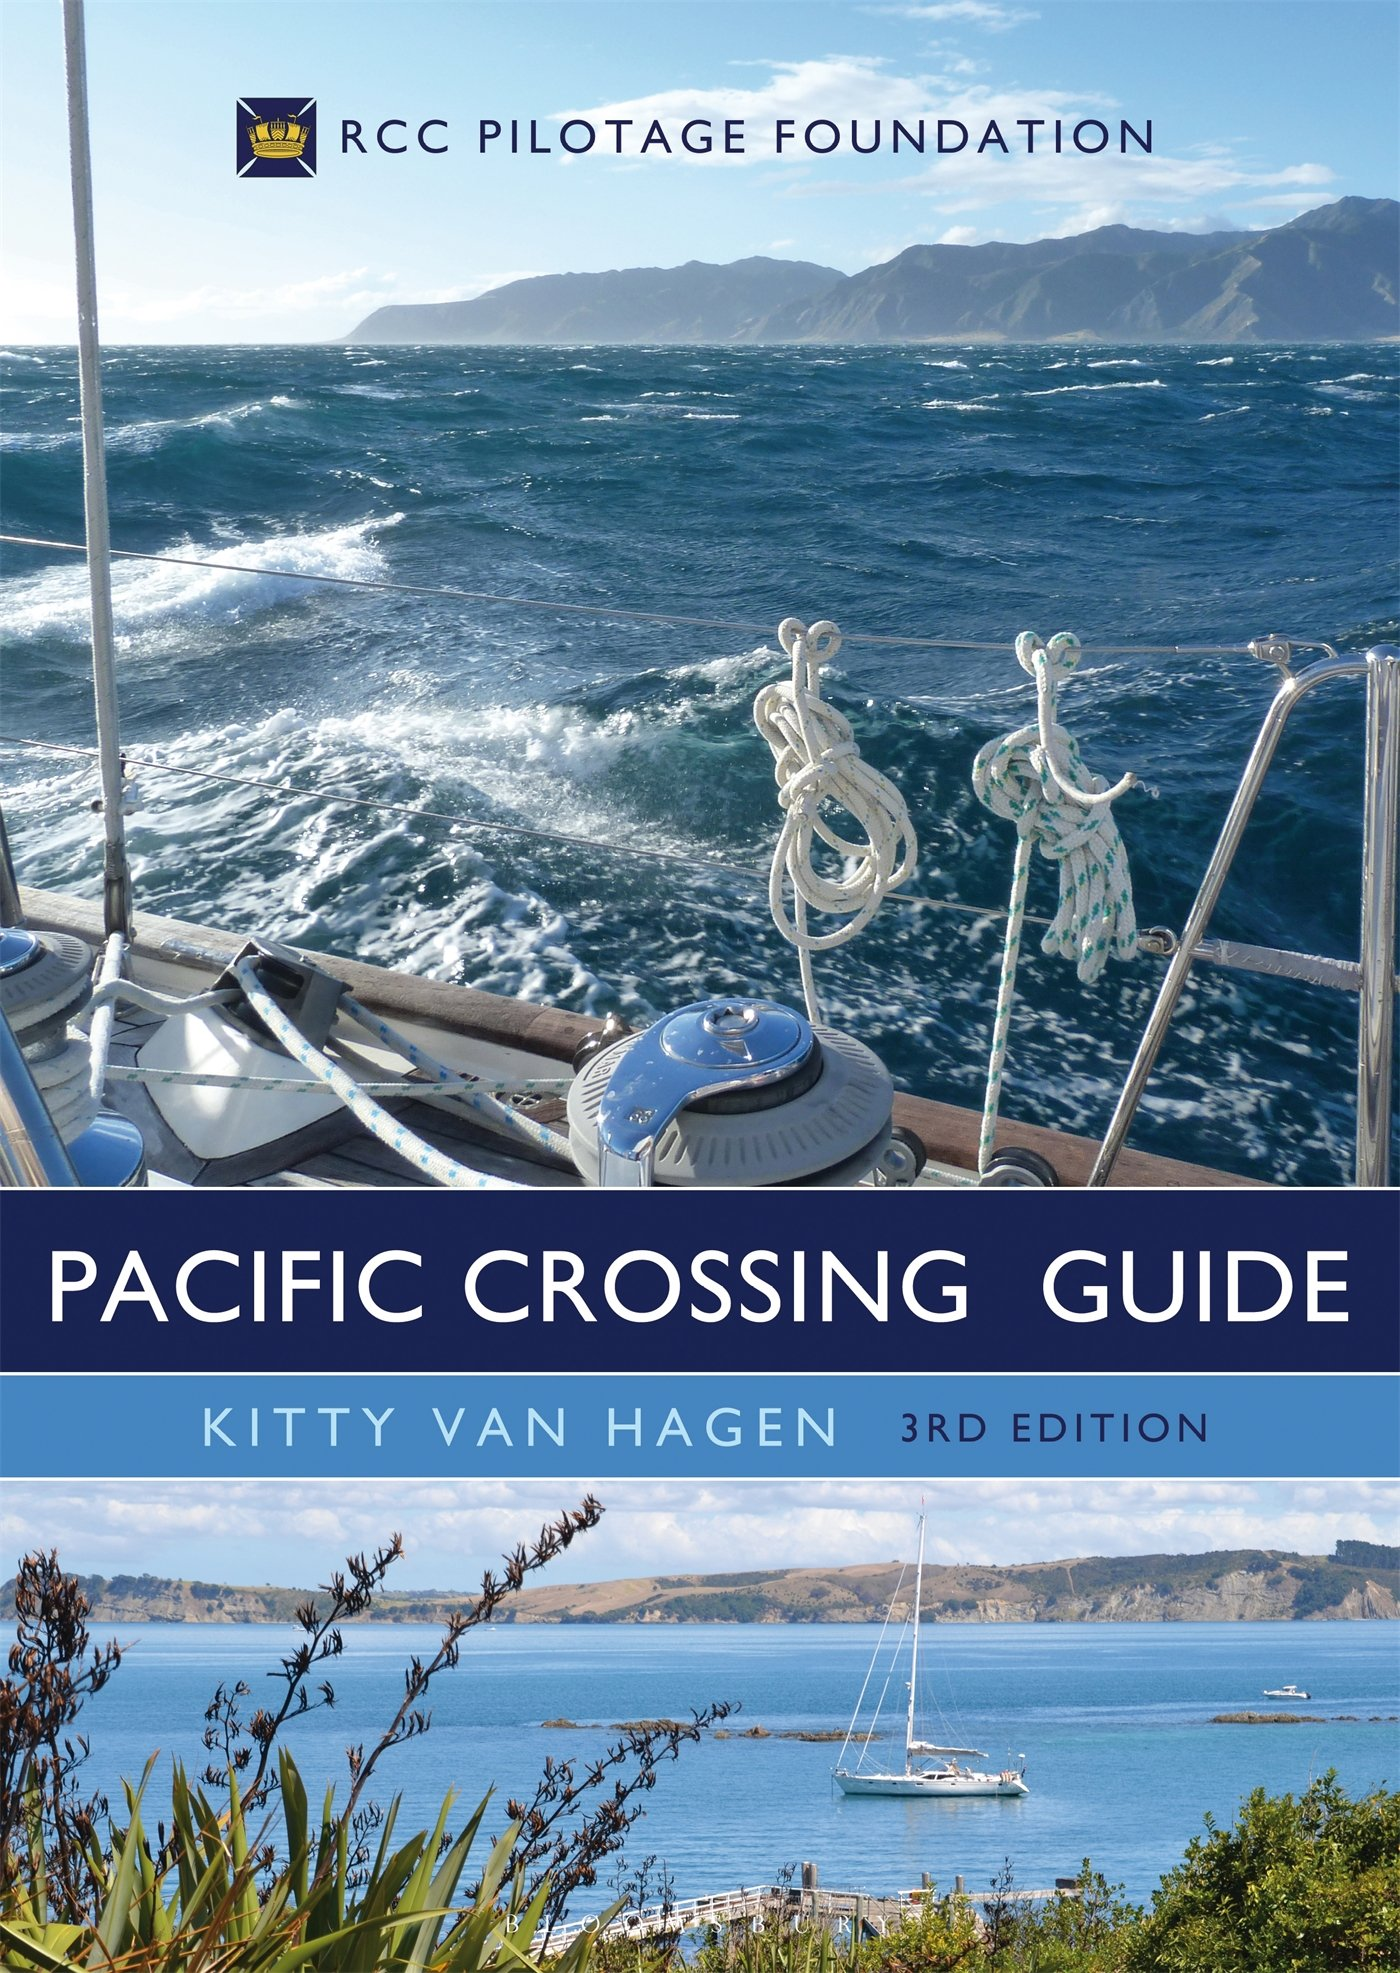 The Pacific Crossing Guide 3rd edition: RCC